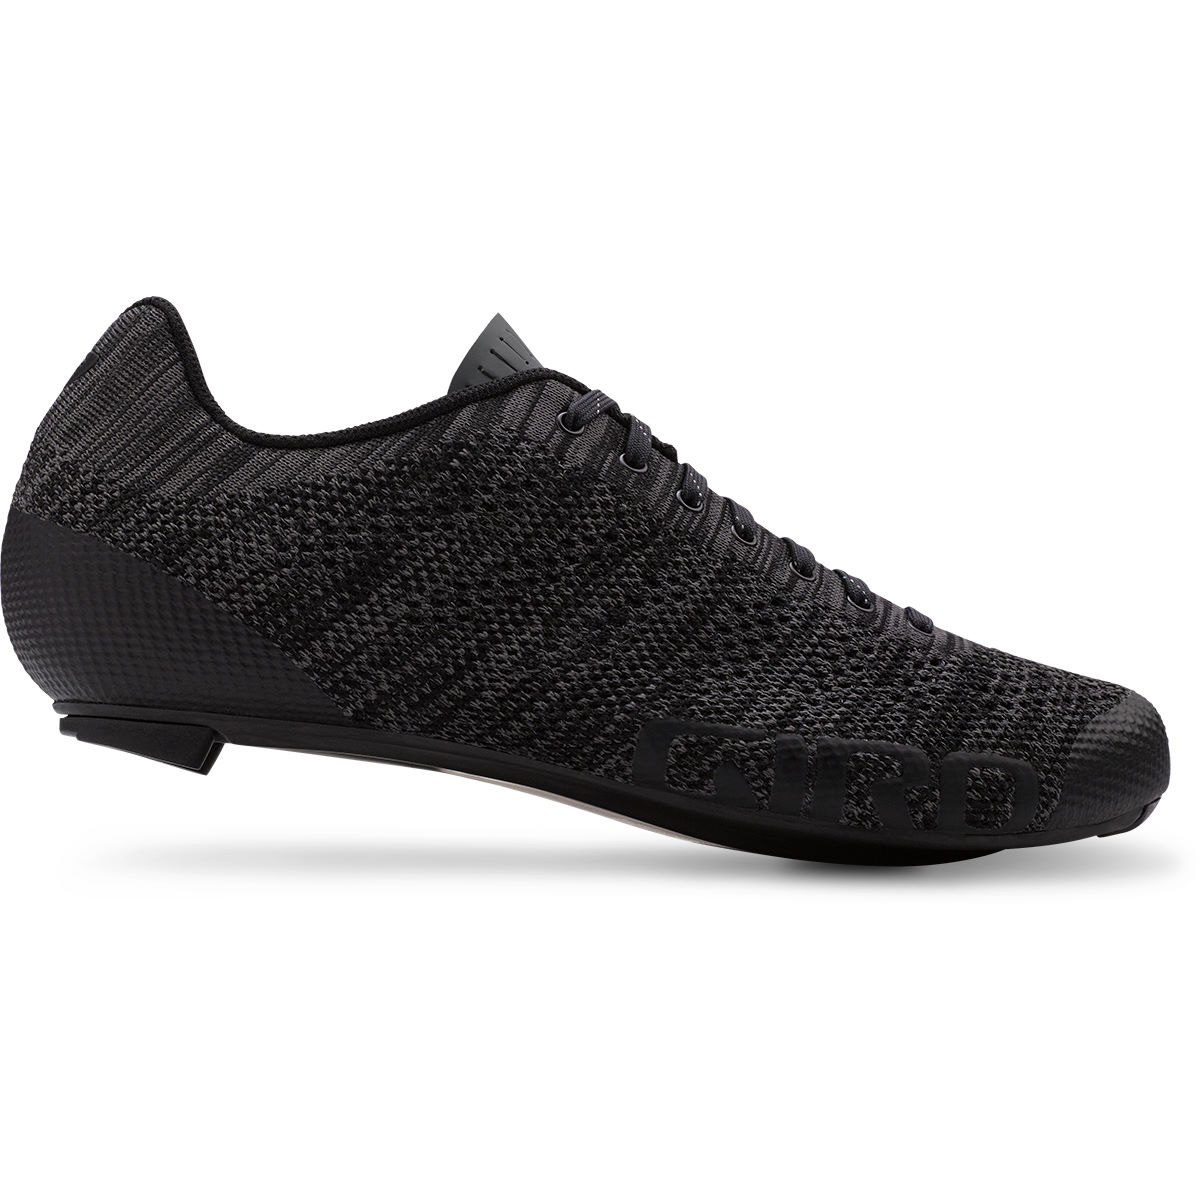 Chaussures de route Giro Empire E70 Knit - 40 Black/Charcoal Heath